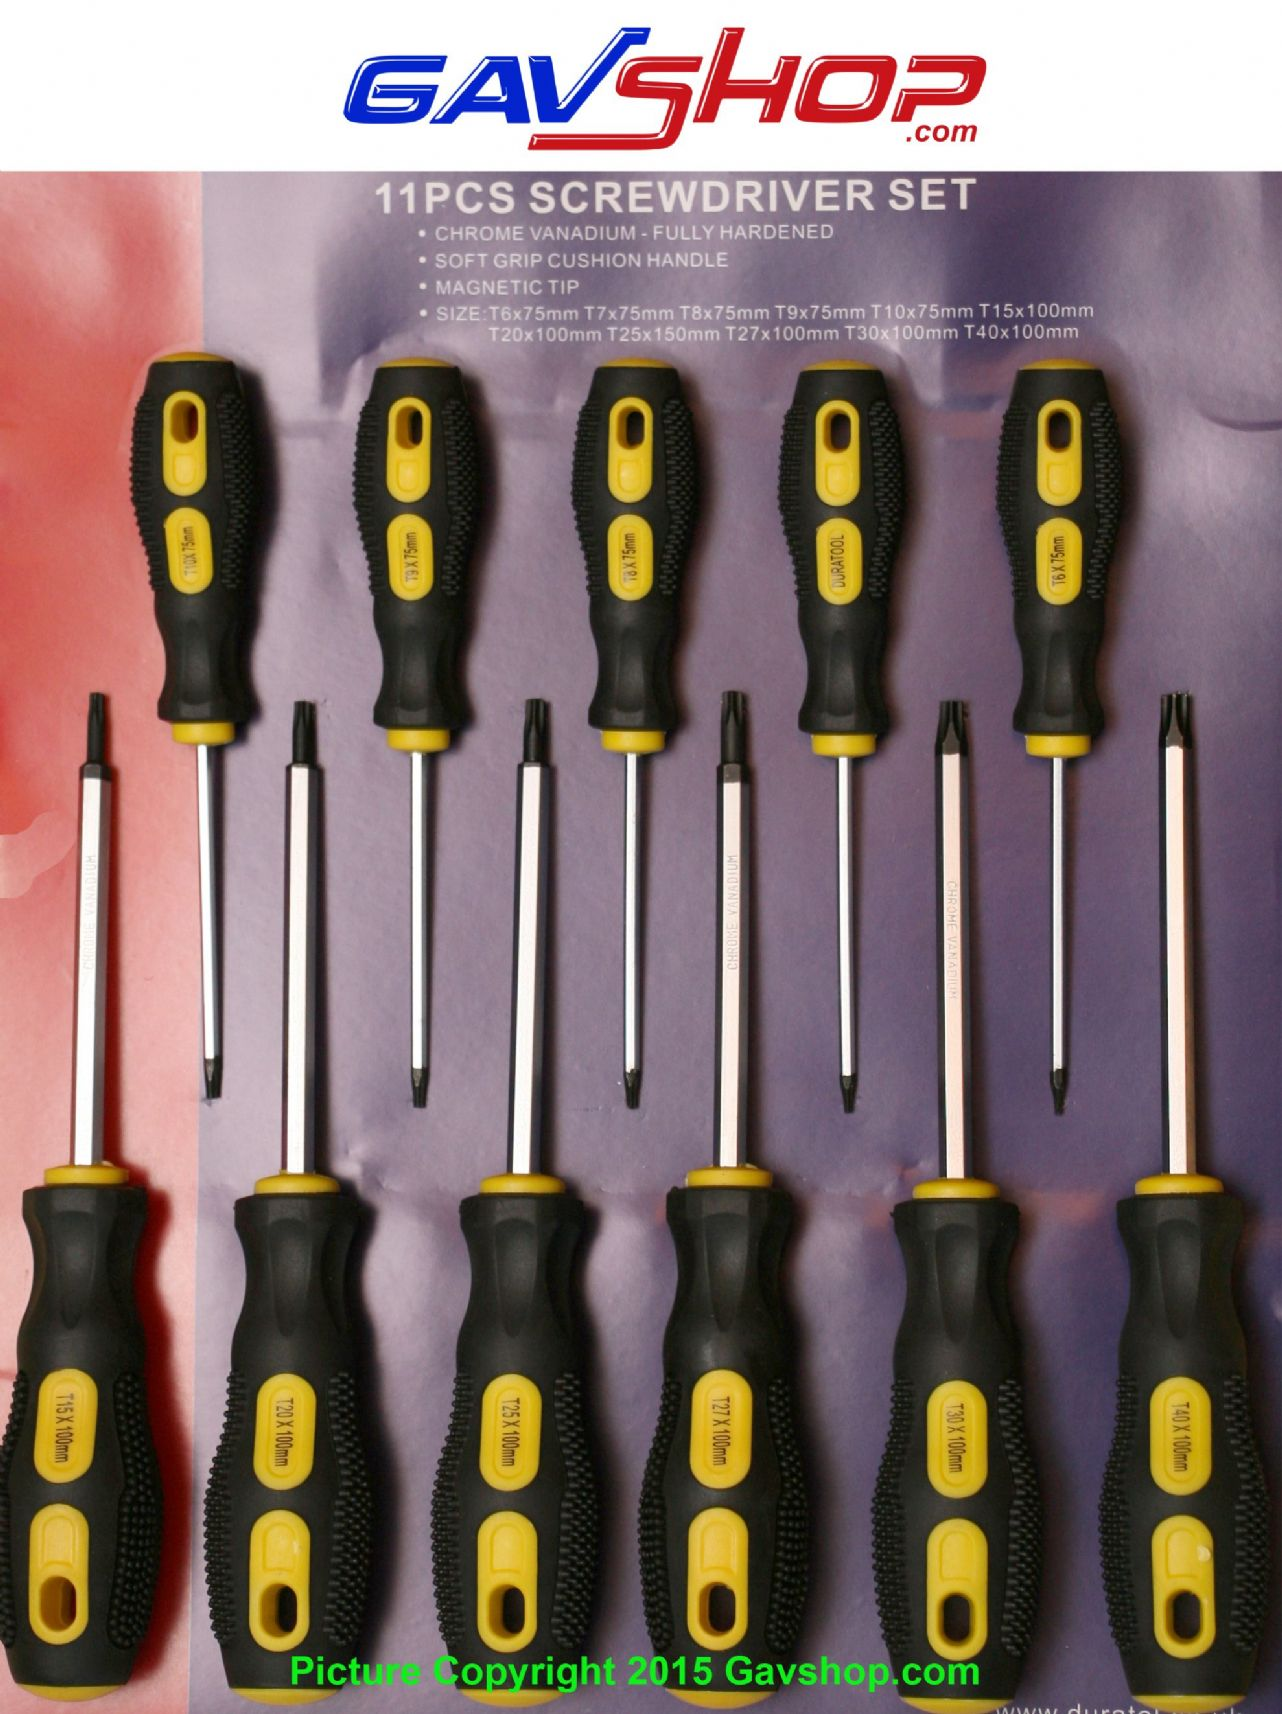 torx screwdriver set of 11 pieces t6 t7 t8 t9 t10 t15 t20 t25 t27 t30 and t40. Black Bedroom Furniture Sets. Home Design Ideas